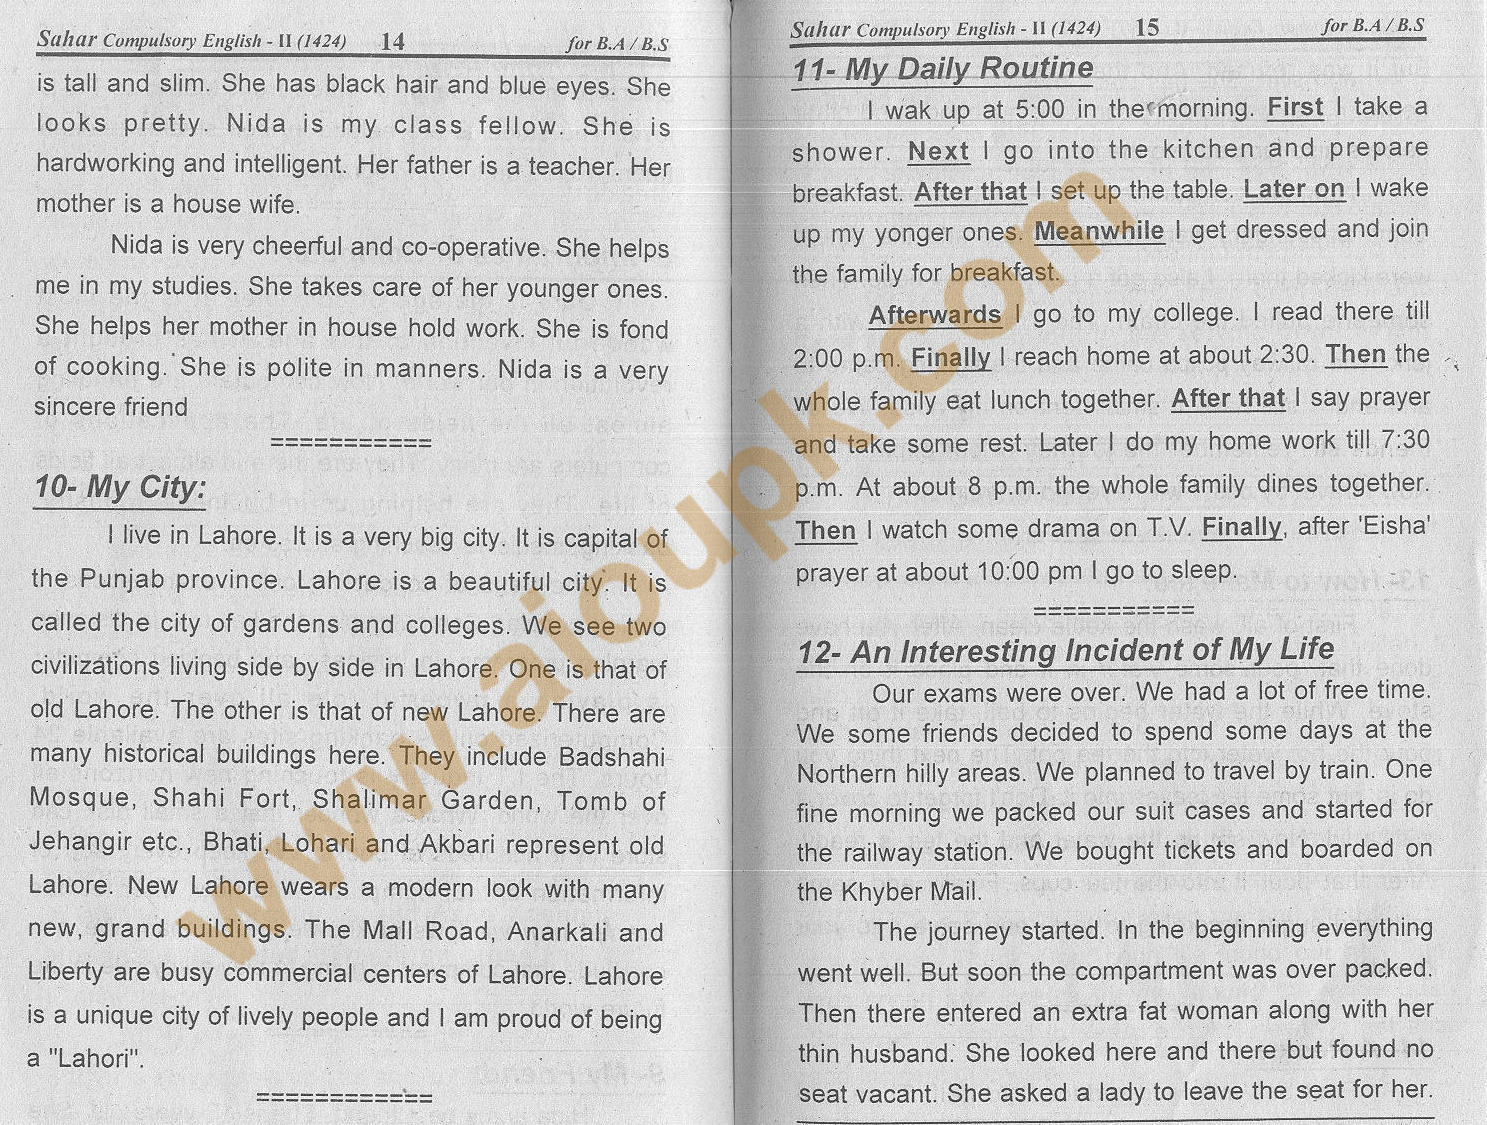 010 Essay Example English Essays For Aiou Unique Daily On Routine Of Housewife June 21 My Life Full